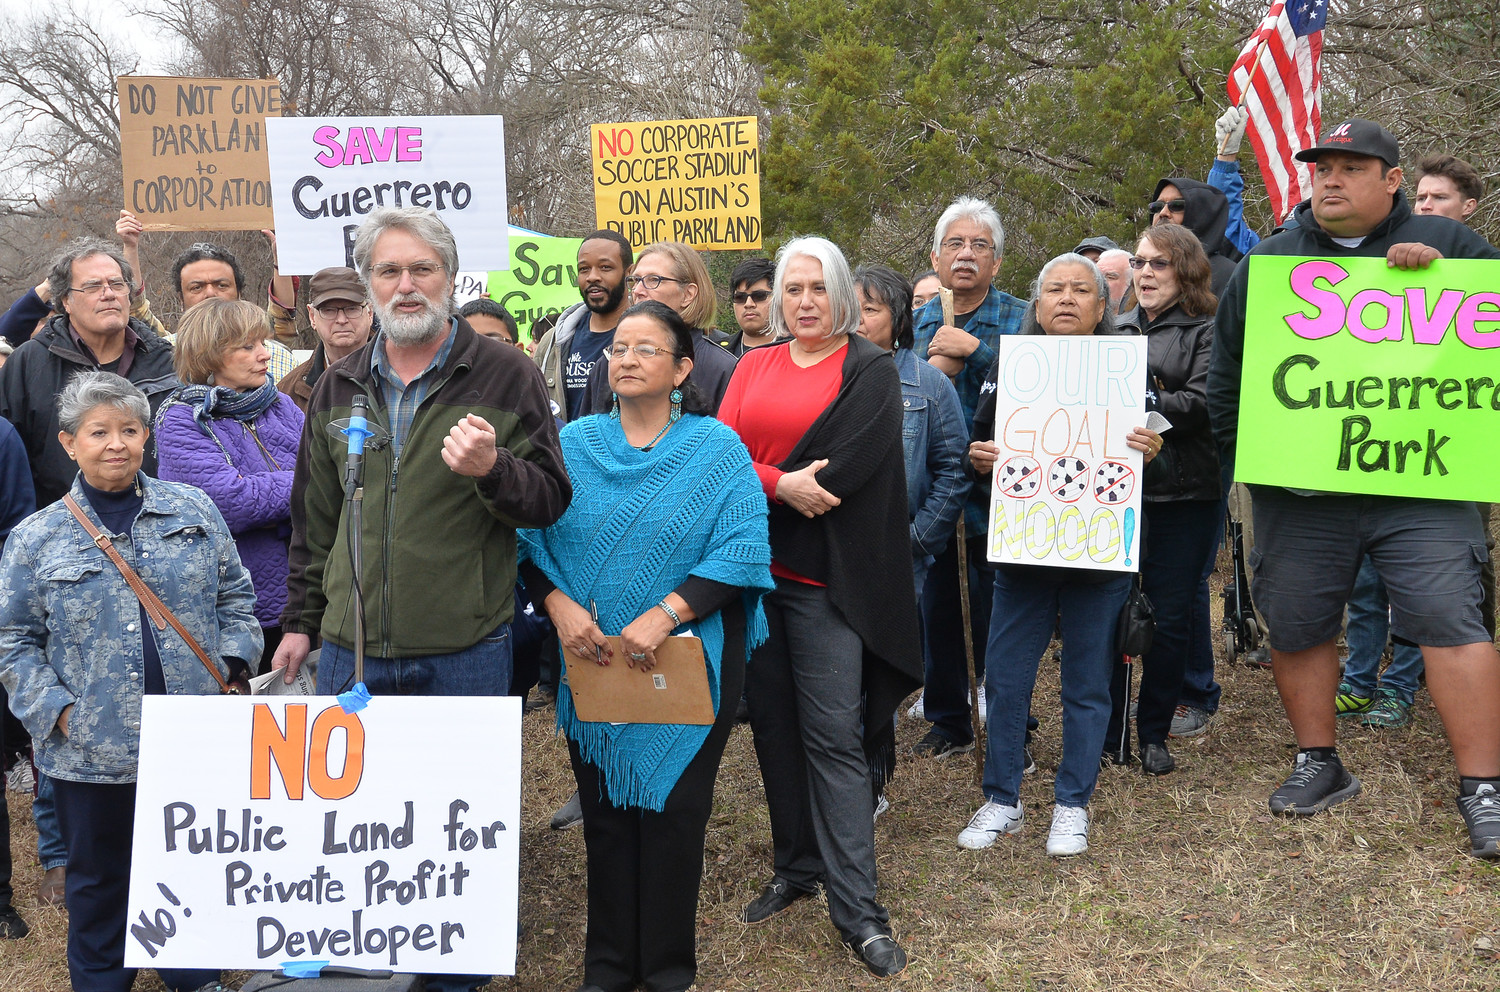 A large group gathered at the entrance to Roy G. Guerrero Metropolitan Park on Saturday afternoon to protest the use of public land to build an MLS soccer stadium.